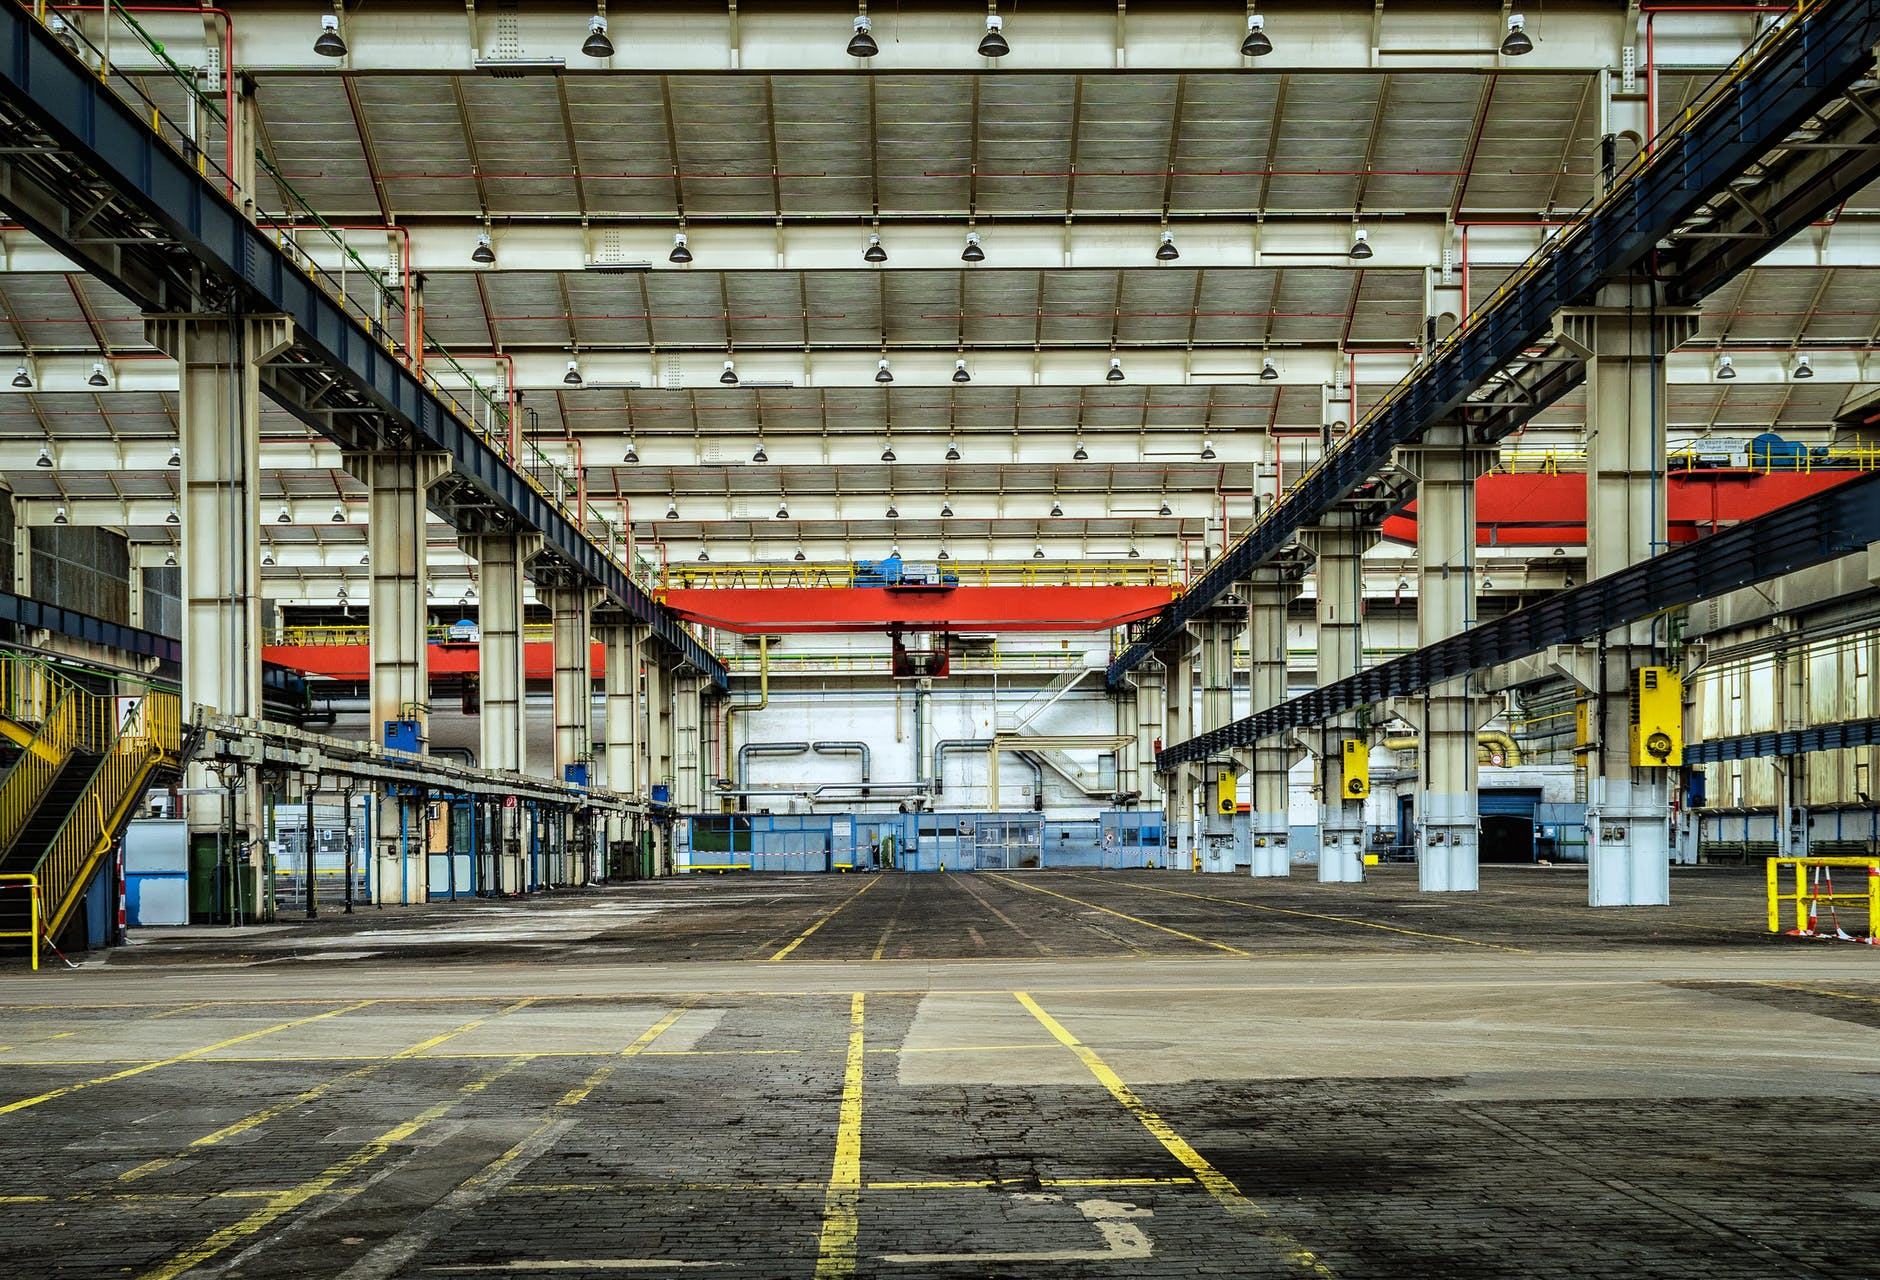 Factory Rent in Vietnam is Gaining the Industrial Market's Attention